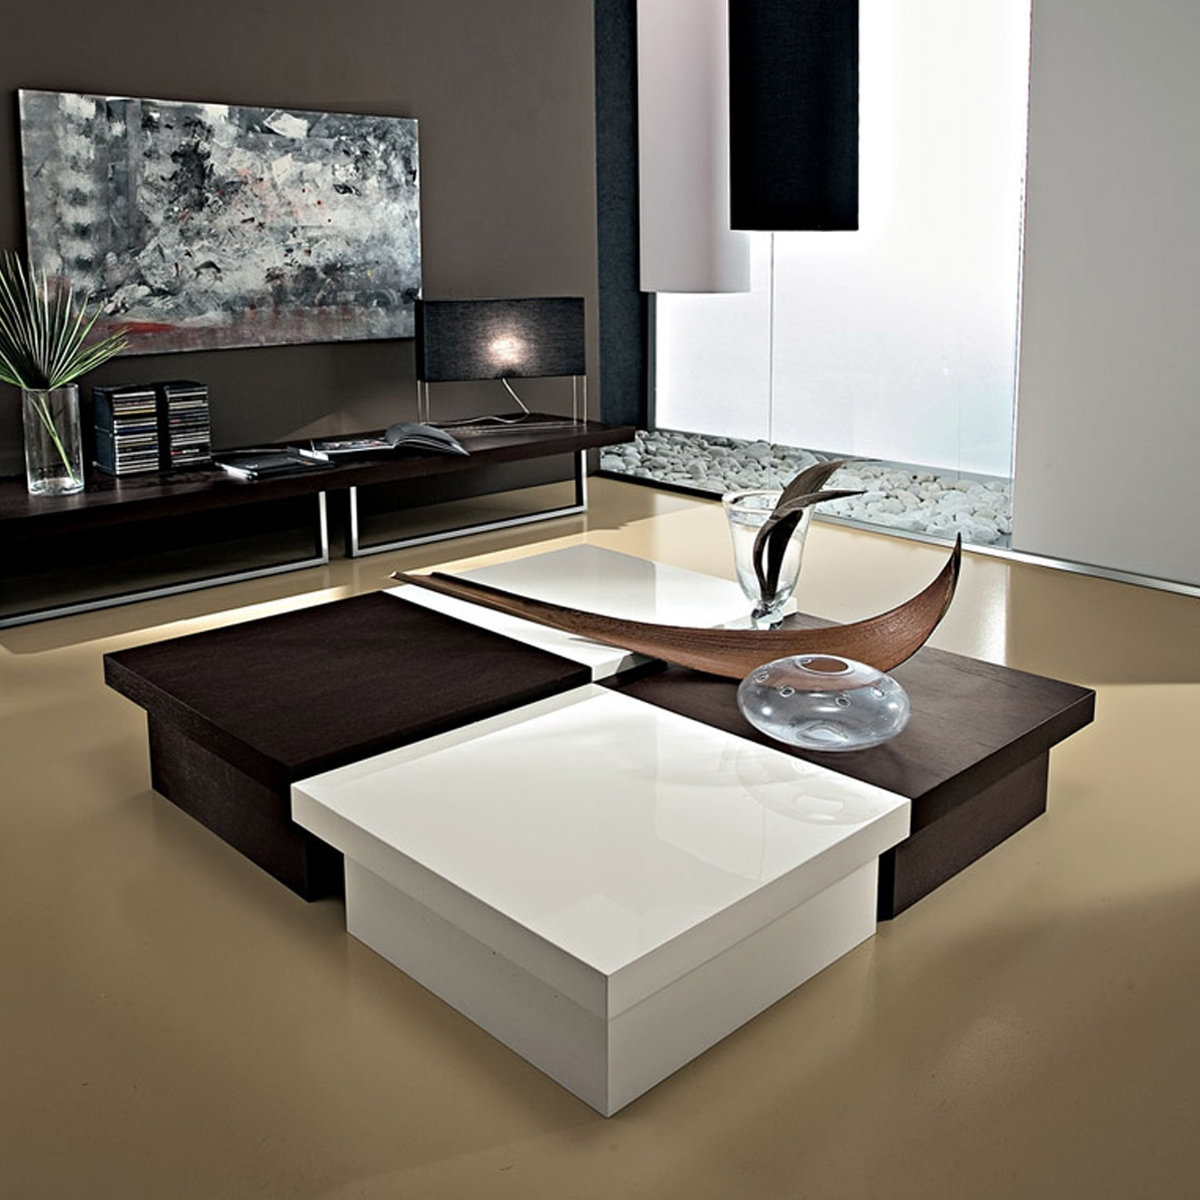 Grande table basse design lolah - Table basse ultra design ...